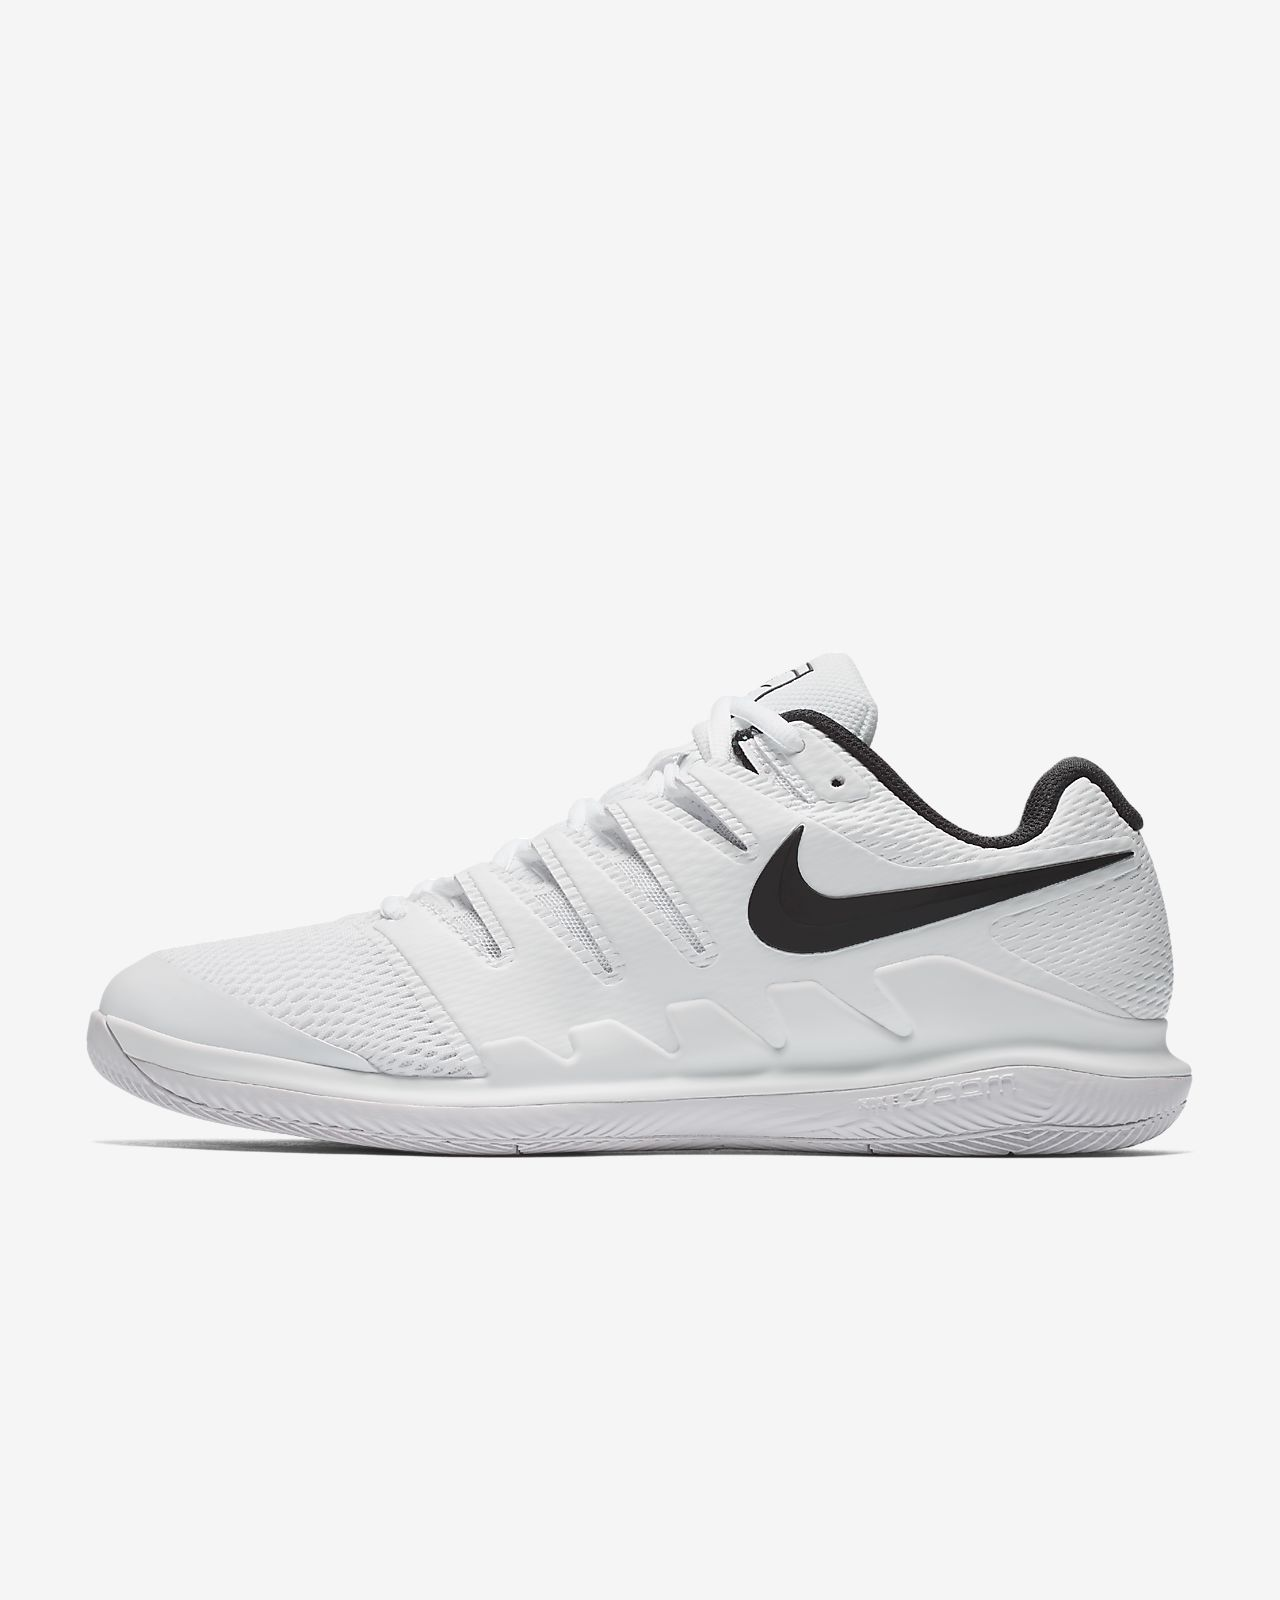 new concept 7da03 ec221 Men s Hard Court Tennis Shoe. Nike Air Zoom Vapor X HC